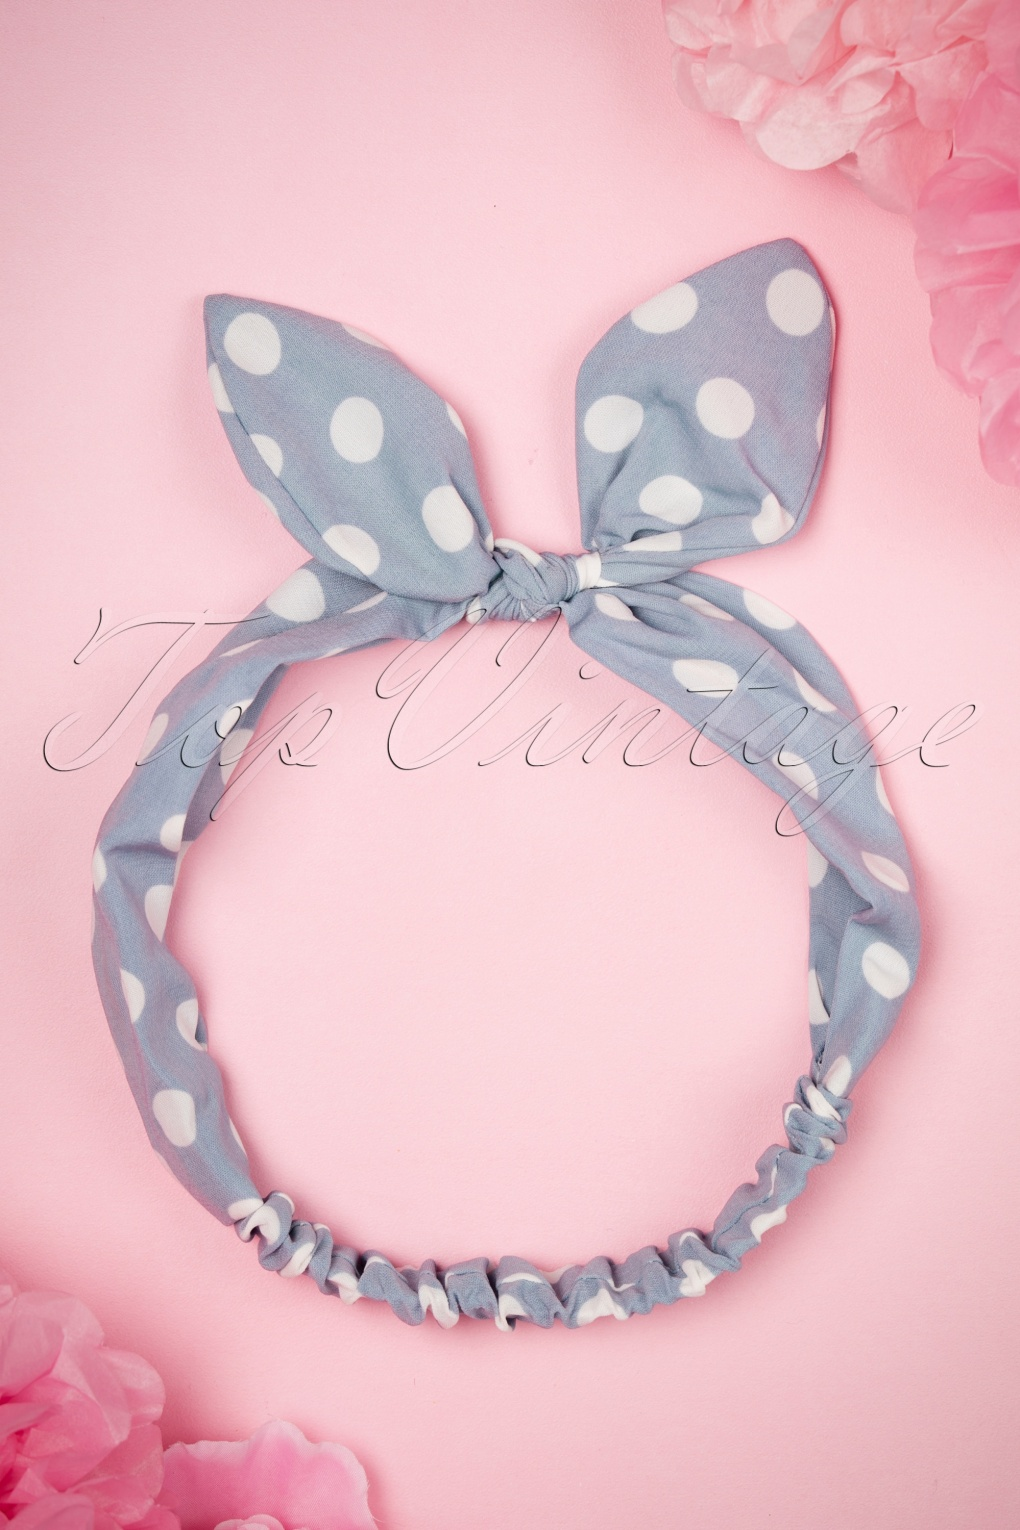 Vintage Hair Accessories: Combs, Headbands, Flowers, Scarf, Wigs 50s Polkadot Headband in Baby Blue £10.62 AT vintagedancer.com